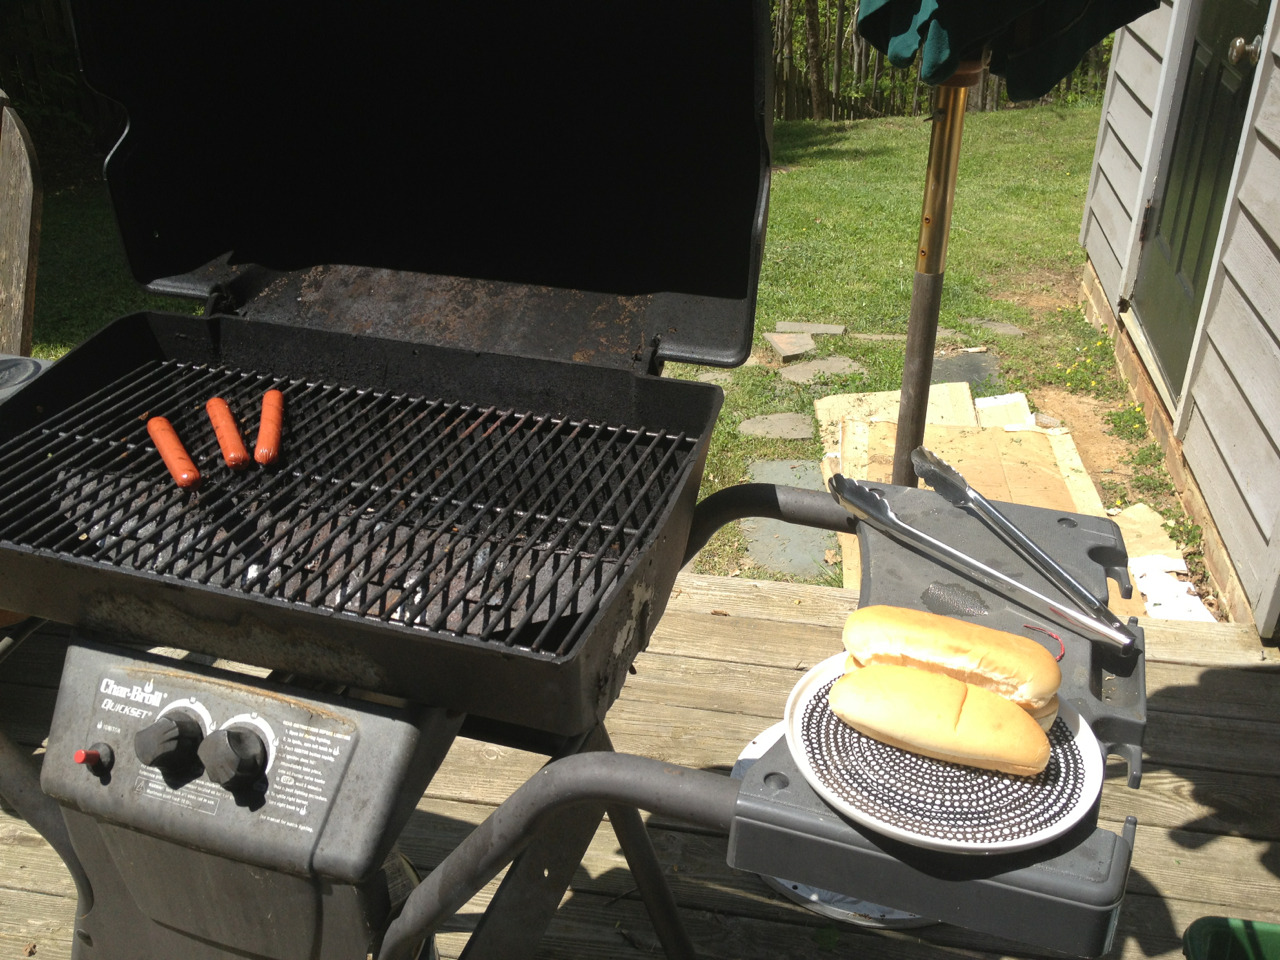 Grilling lunch because we can.